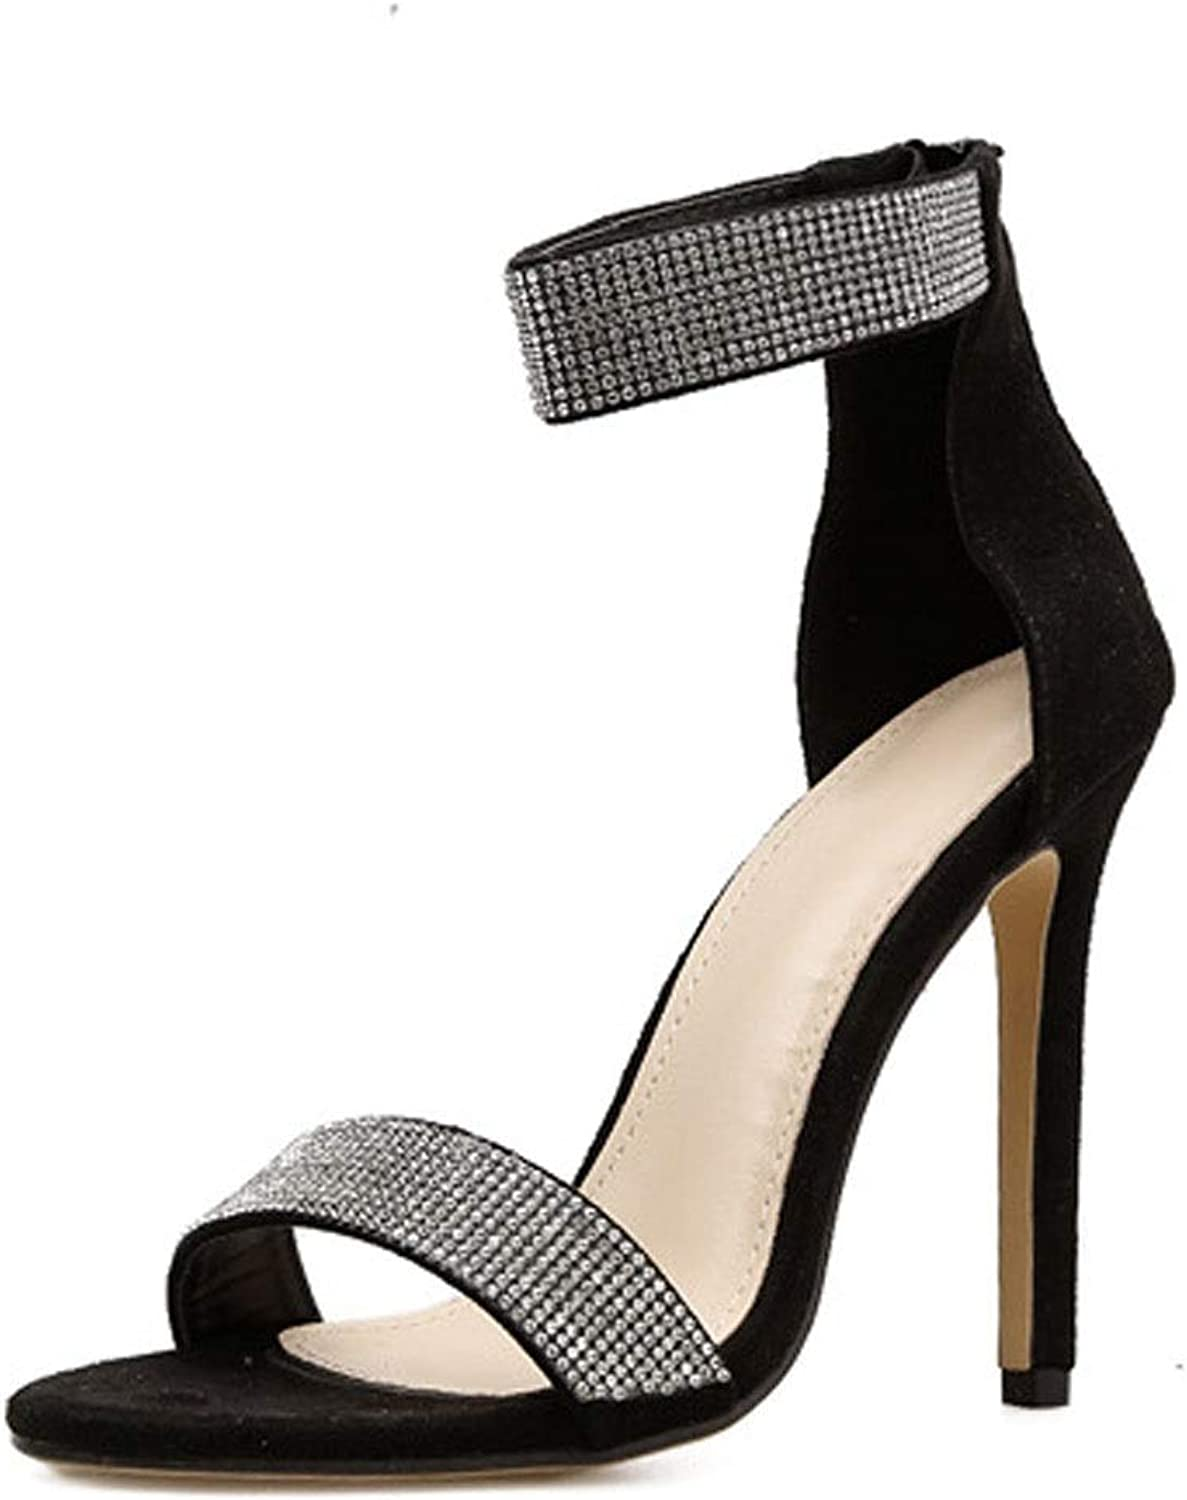 Kirabon Women's High Heel Sandals Fish Mouth Shiny Rhinestone Stiletto Heels (color   Black, Size   38)